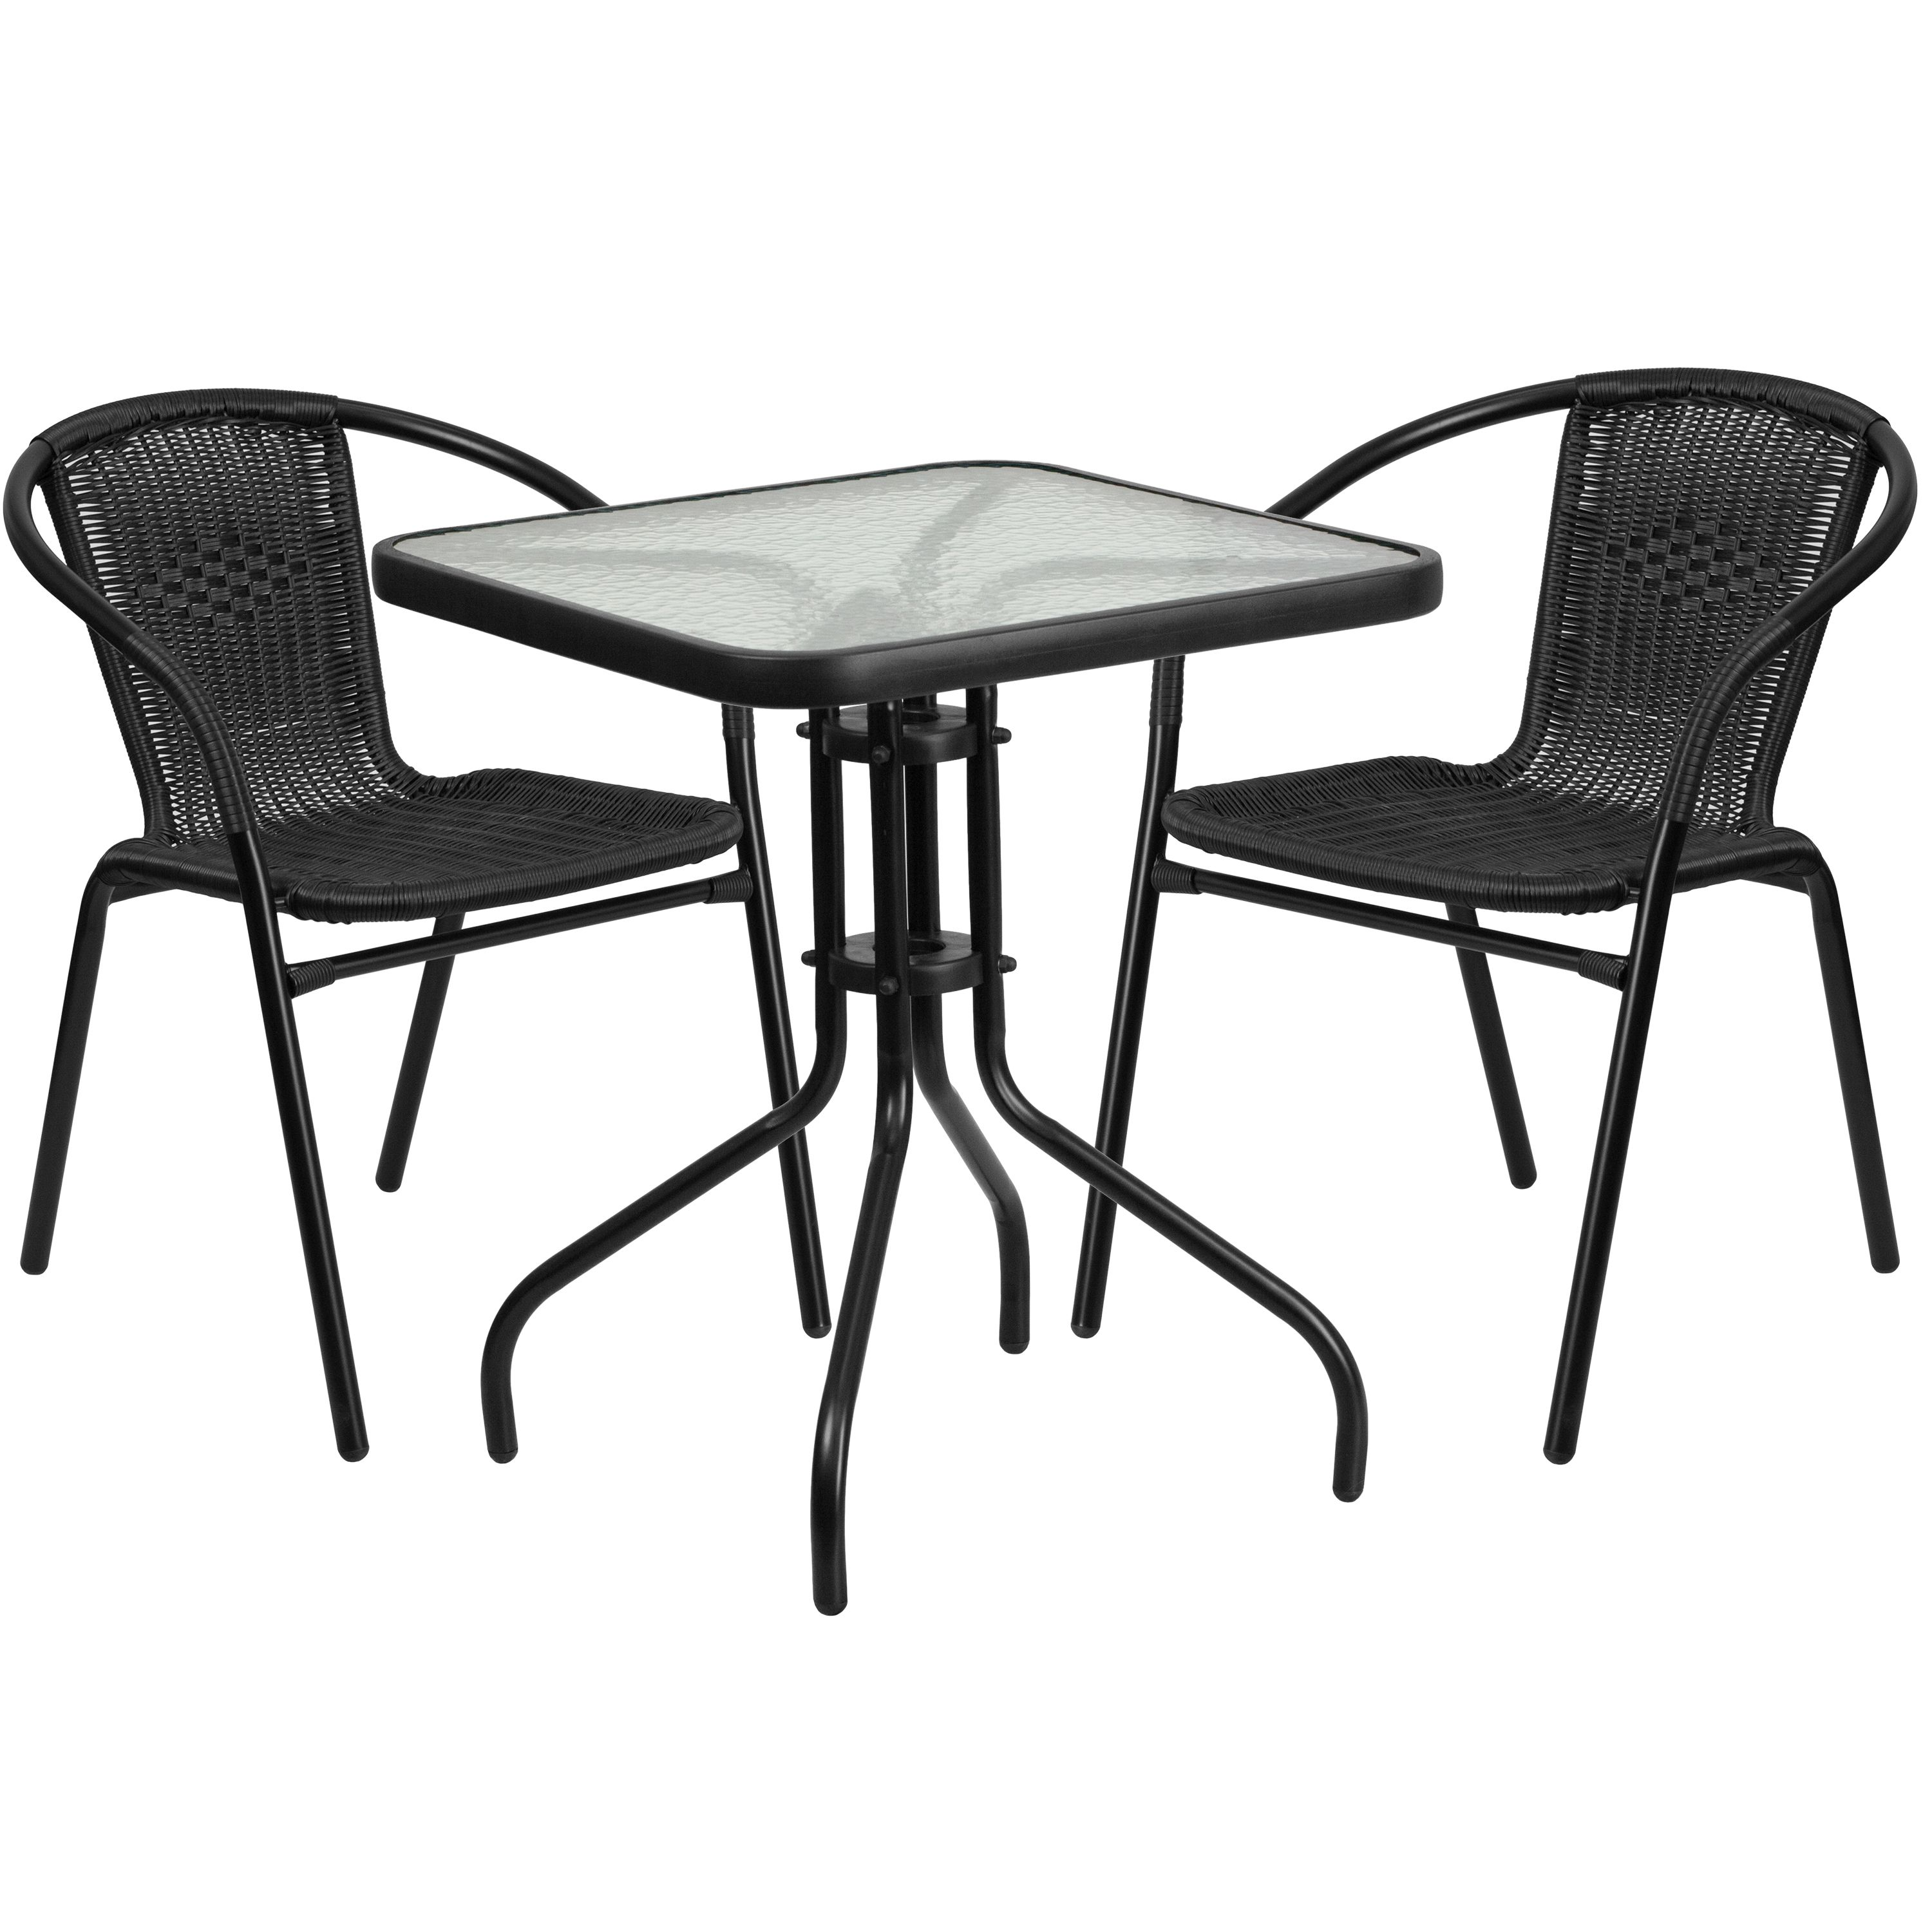 Shop By Brand Glass Table Set Bistro Set Modern Outdoor Dining